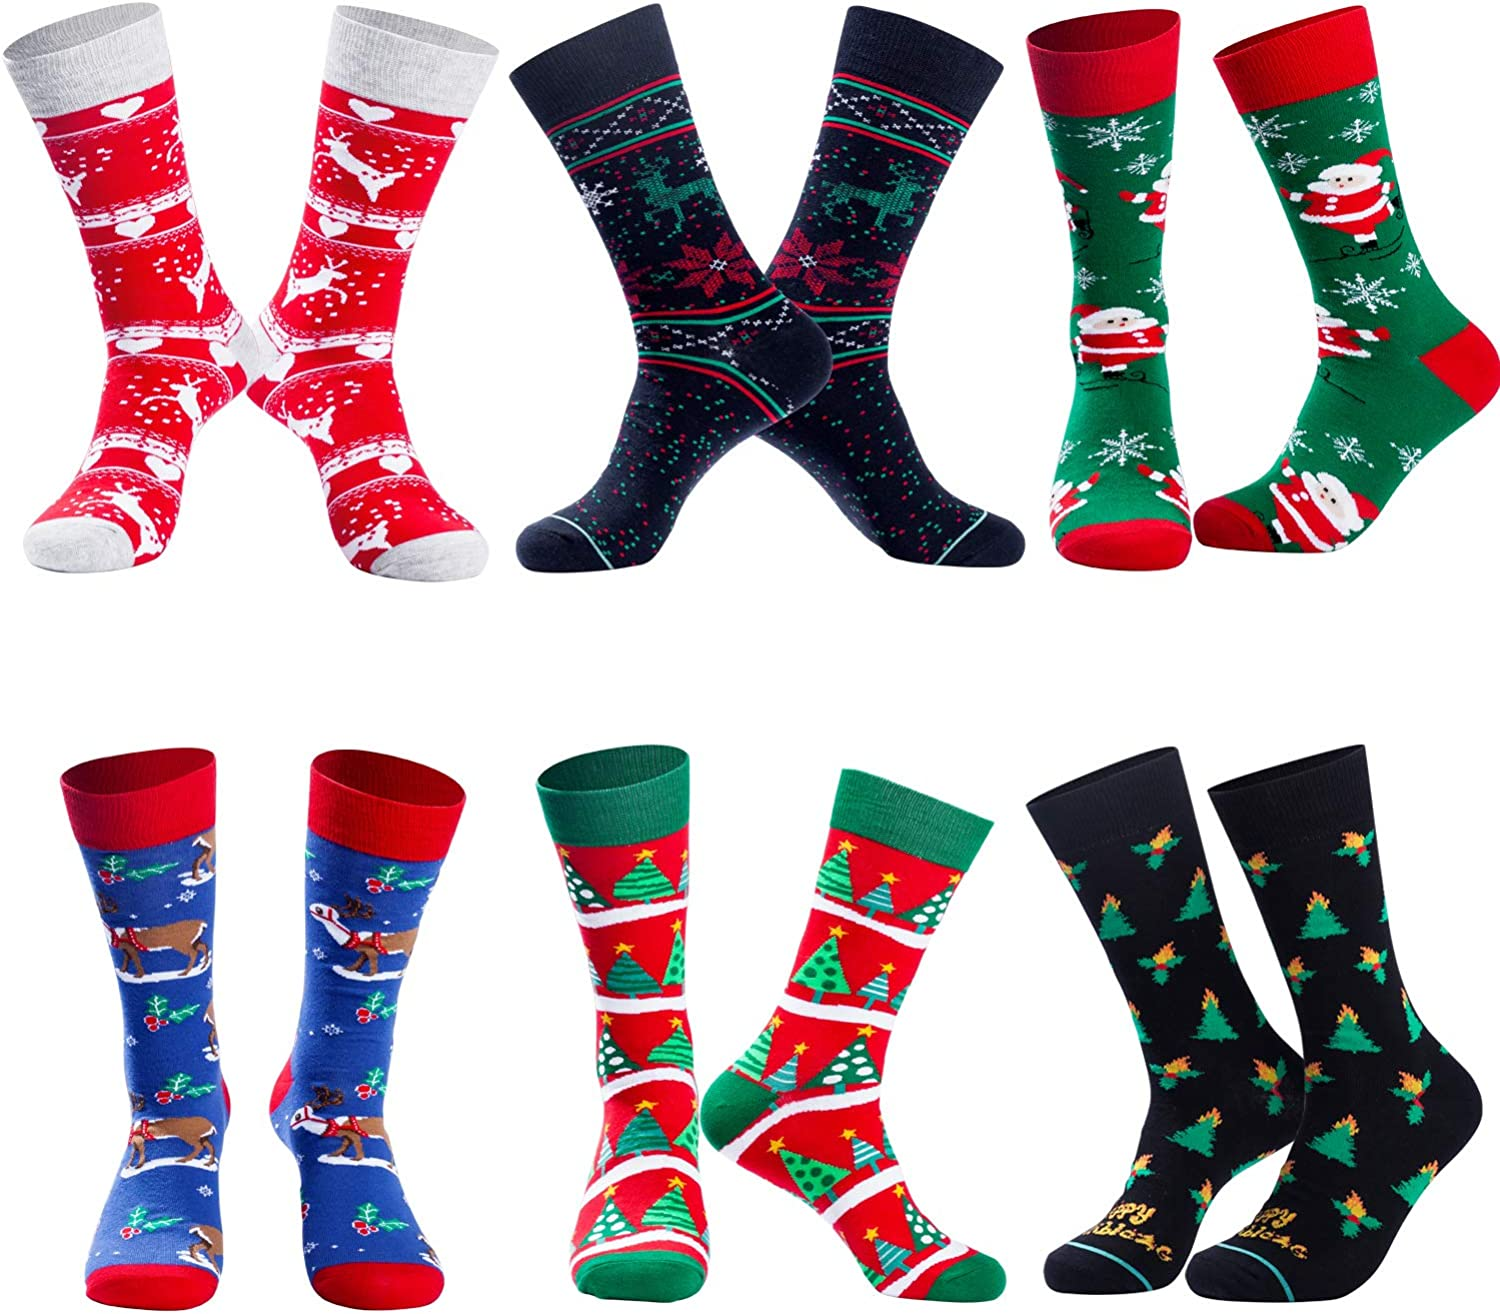 Mens Funny Socks Christmas Socks for Men Women Colorful Fun Novelty Crew Patterned Socks 6 Pairs US 7-13